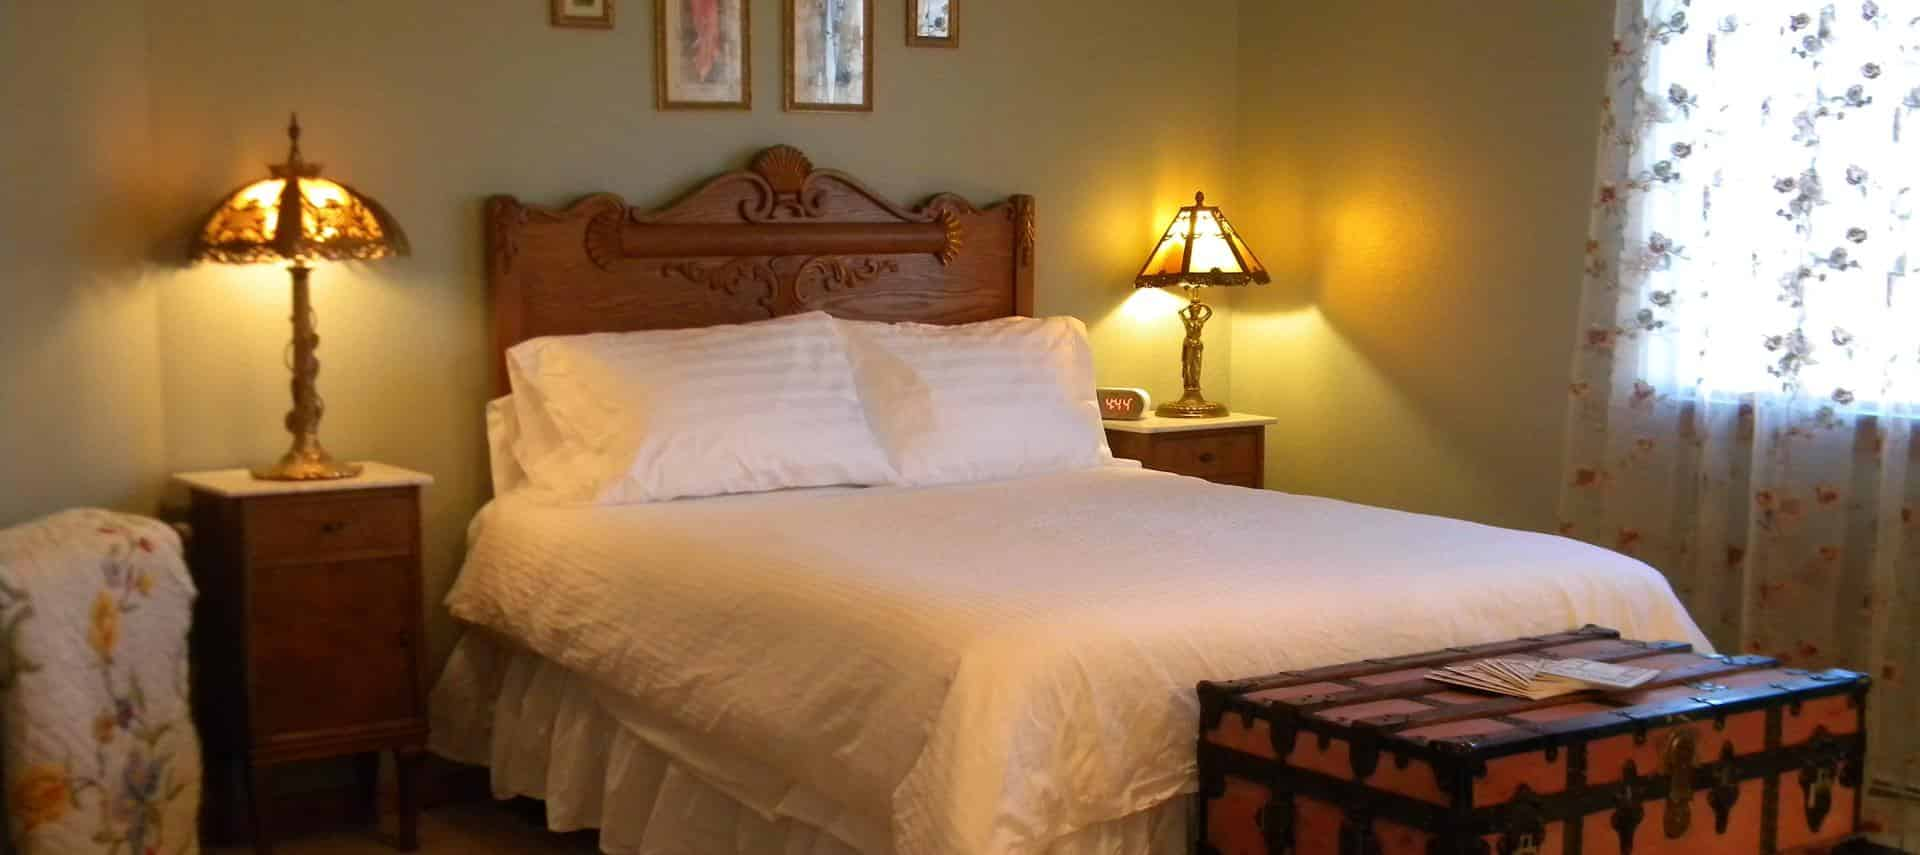 Bed with brown wooden headboard and white bedding